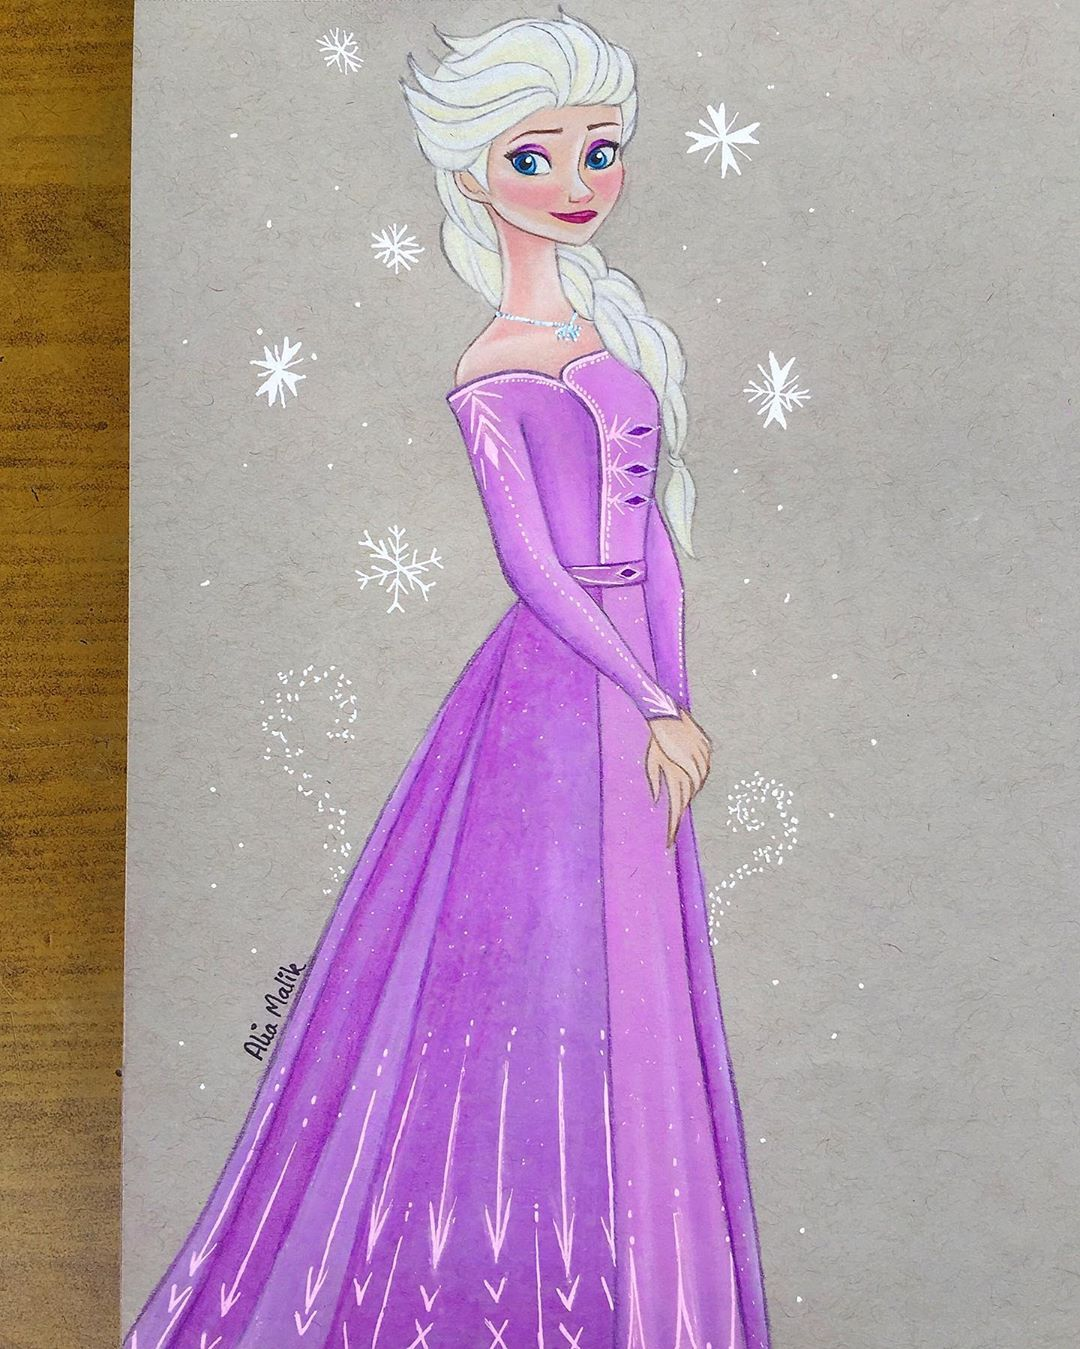 Alia Arts On Instagram Here Is Another Frozen2 Drawing I Am Totally In Elsa Mood Love Her Purple Dress Love All The Elsa Outfit Elsa Outfit Drawings Art